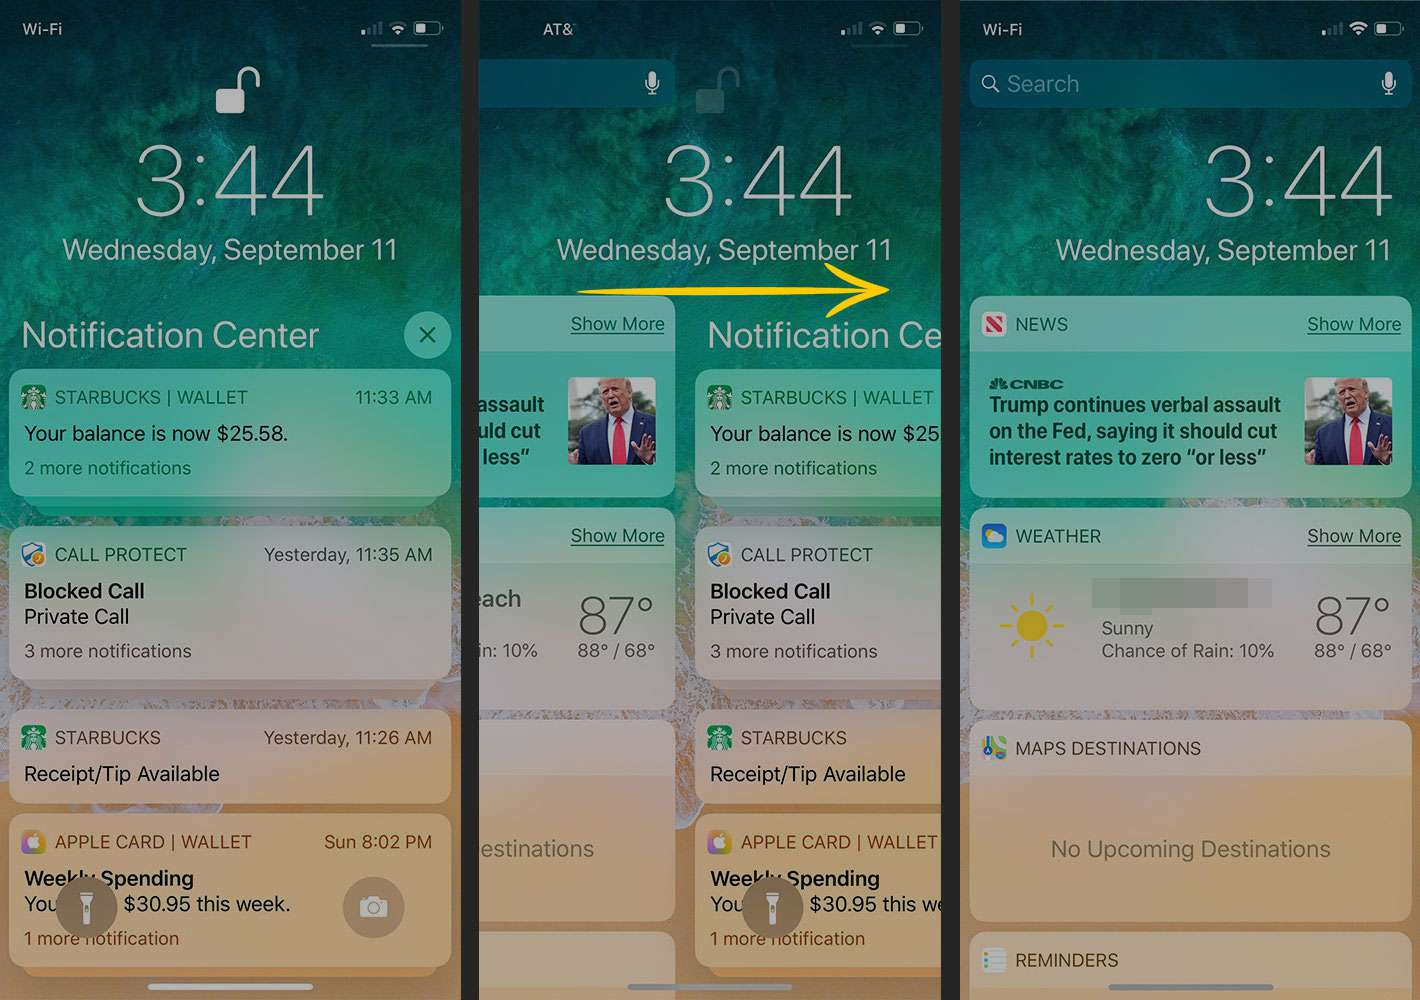 Swiping on Notification Center to open Today view